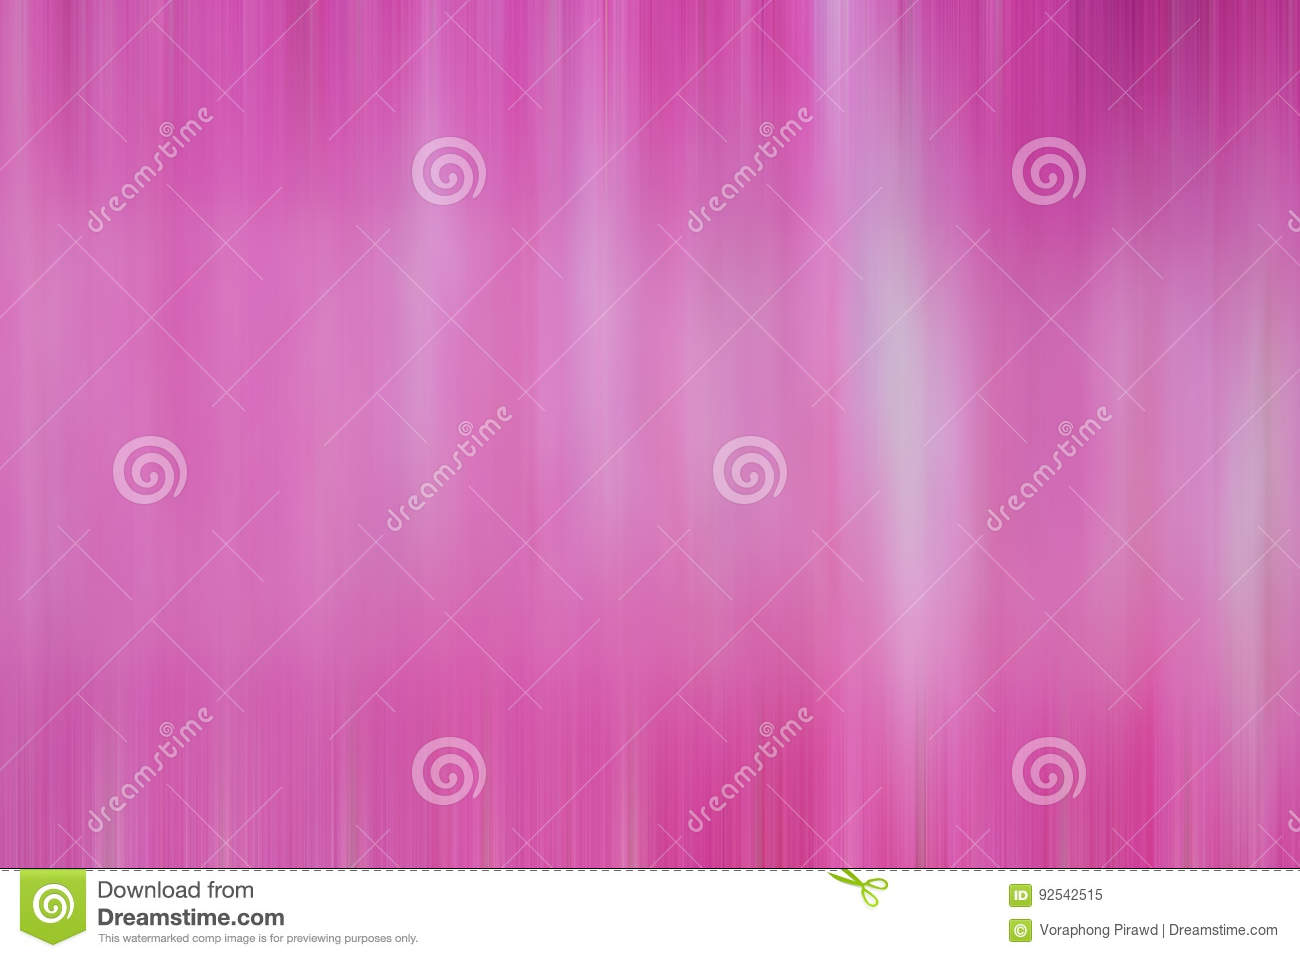 Abstract blur pink background